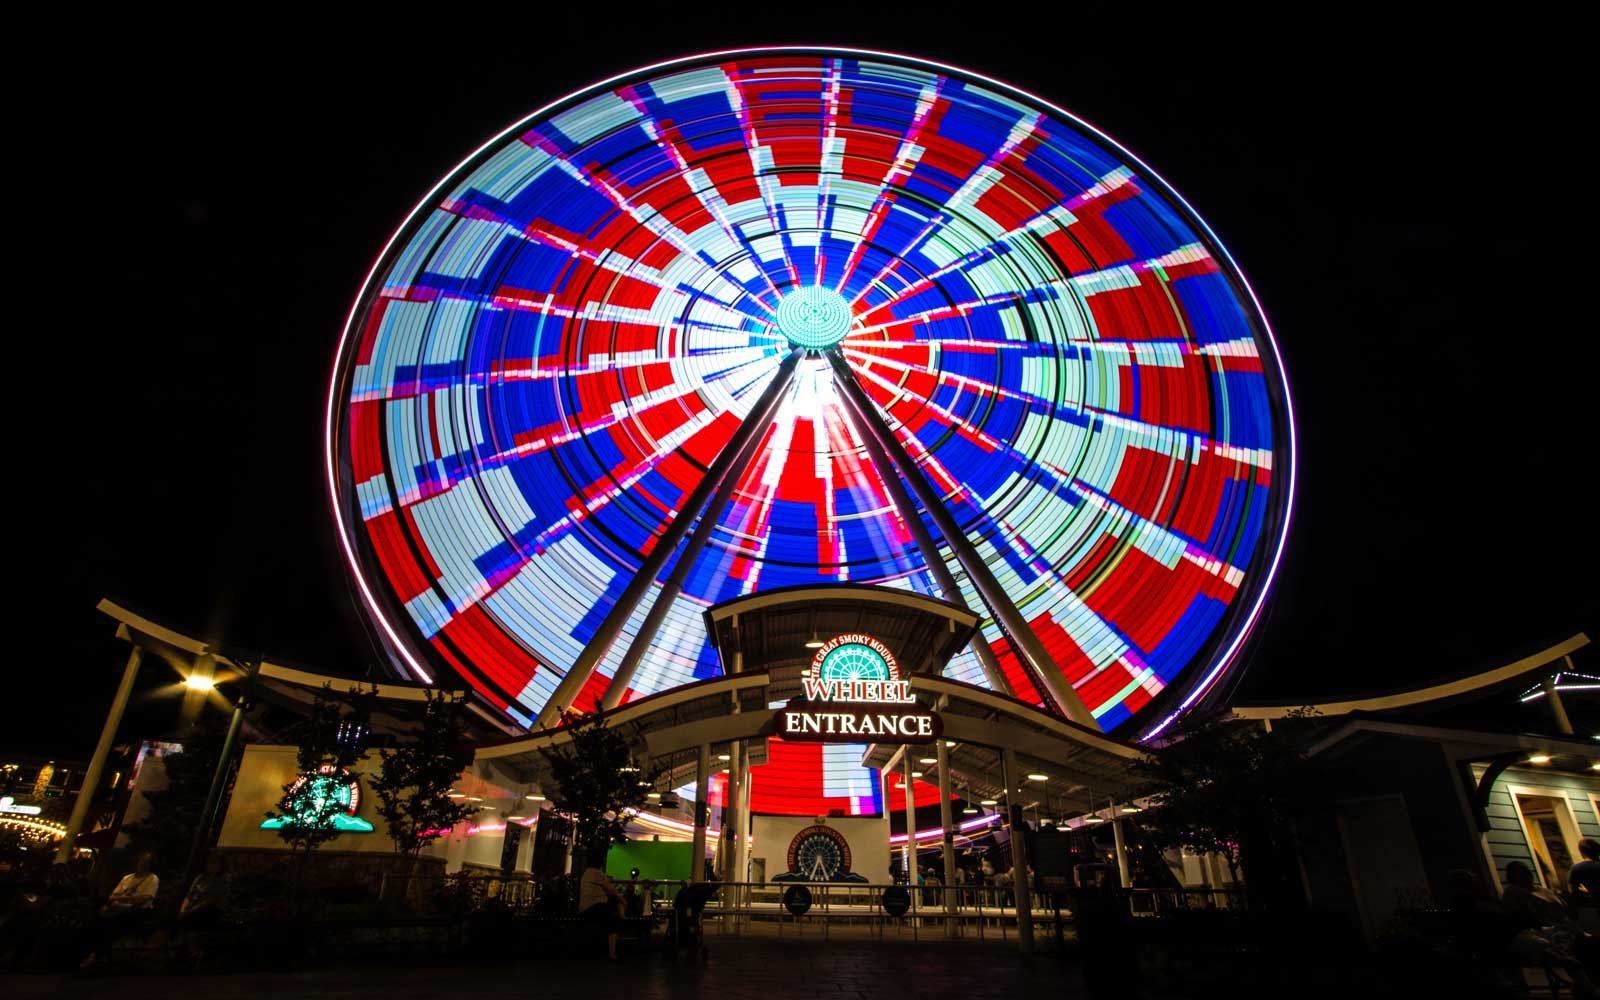 The Great Smoky Mountain Sky Wheel located at the Island entertainment complex in the resort town of Pigeon Forge, Tennessee